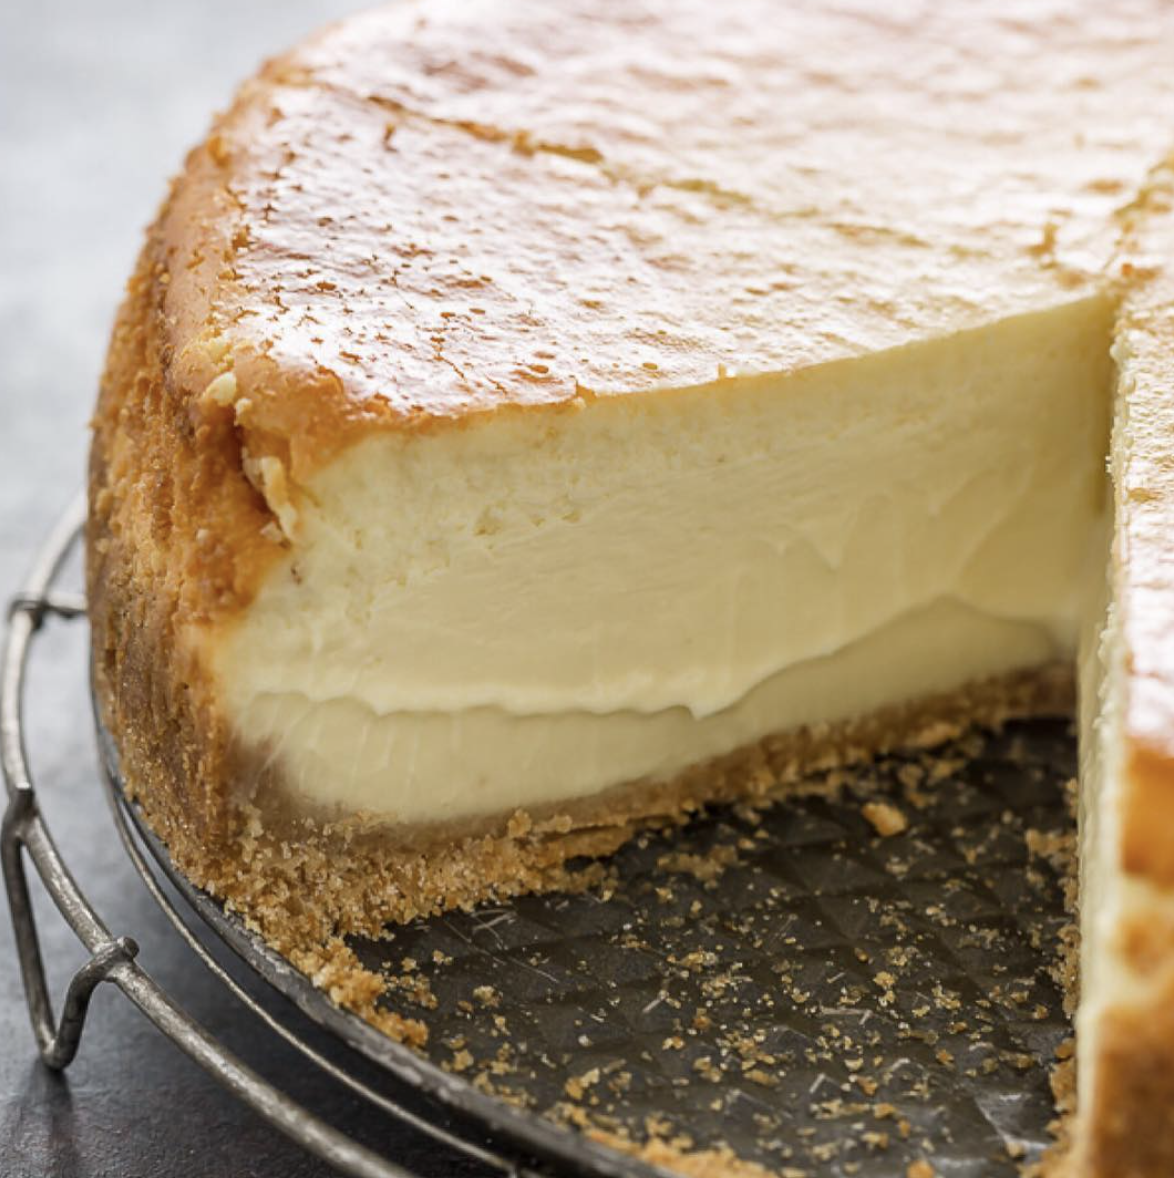 Creamy Cheesecake with Graham Cracker Crust by bakerbynature | Quick & Easy  Recipe | The Feedfeed